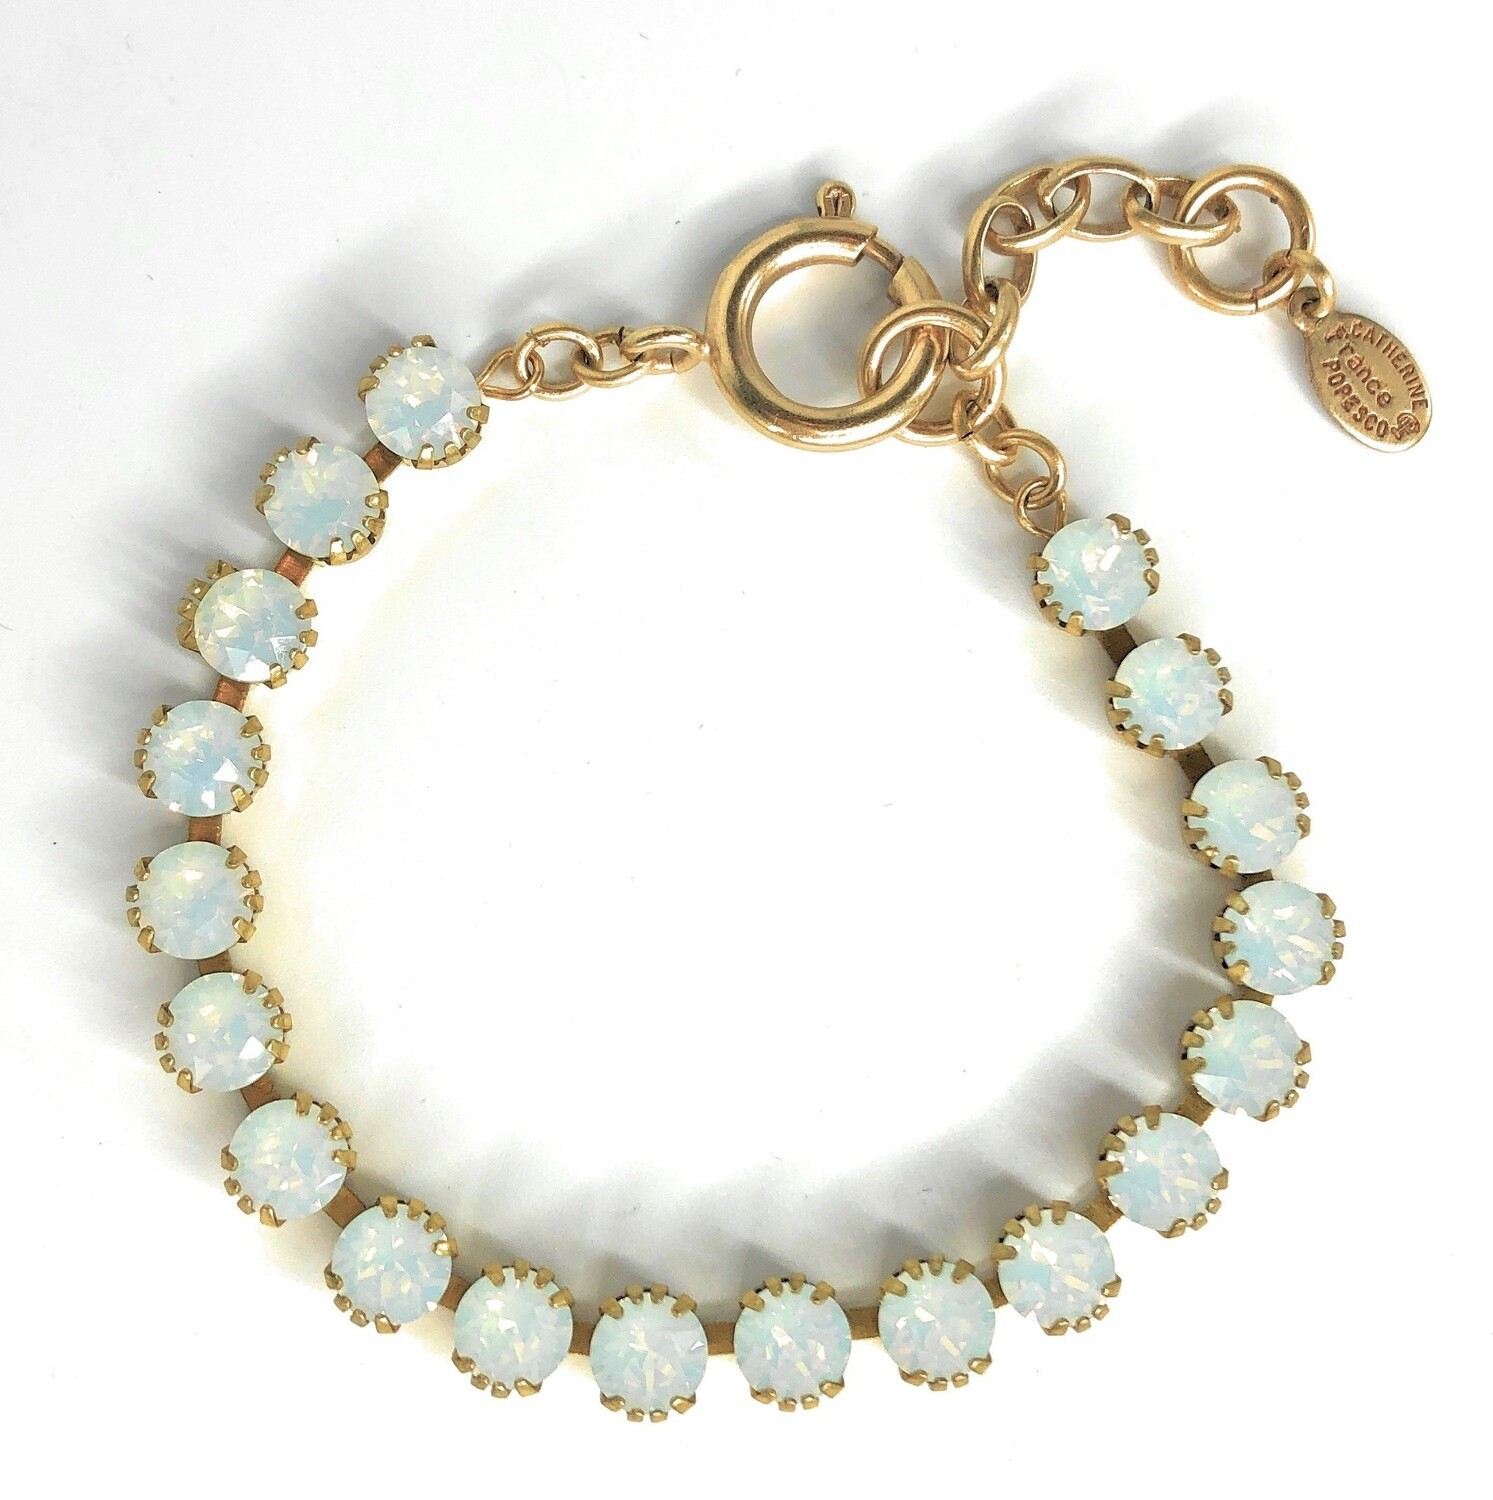 TENNIS BRACELET Gold With White Opal  Swarovski Crysal